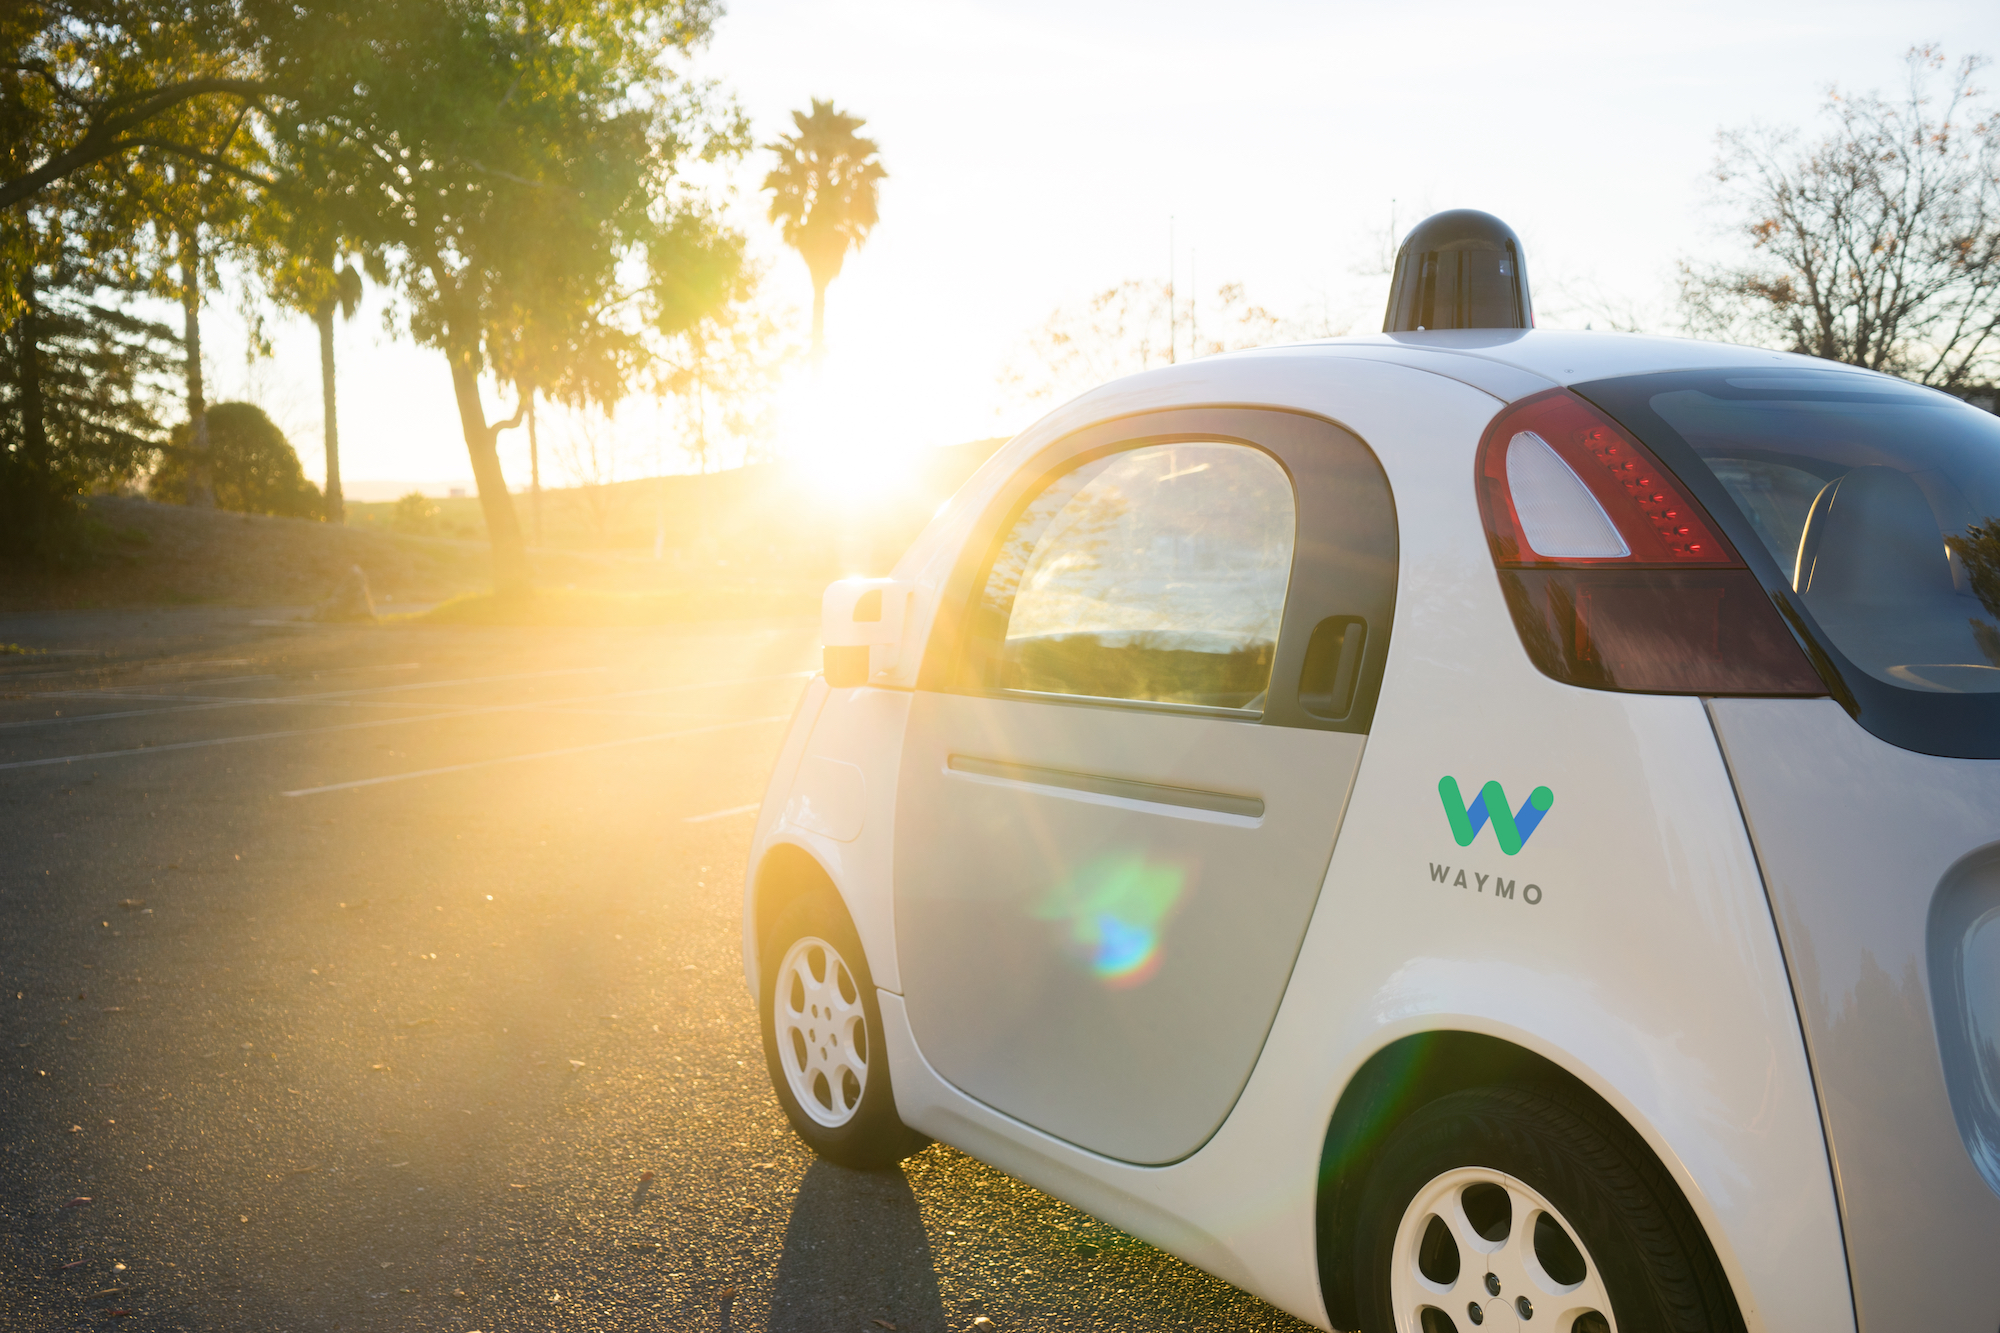 Google's Self-Driving Cars Have a New Name: 'Waymo' - Motherboard